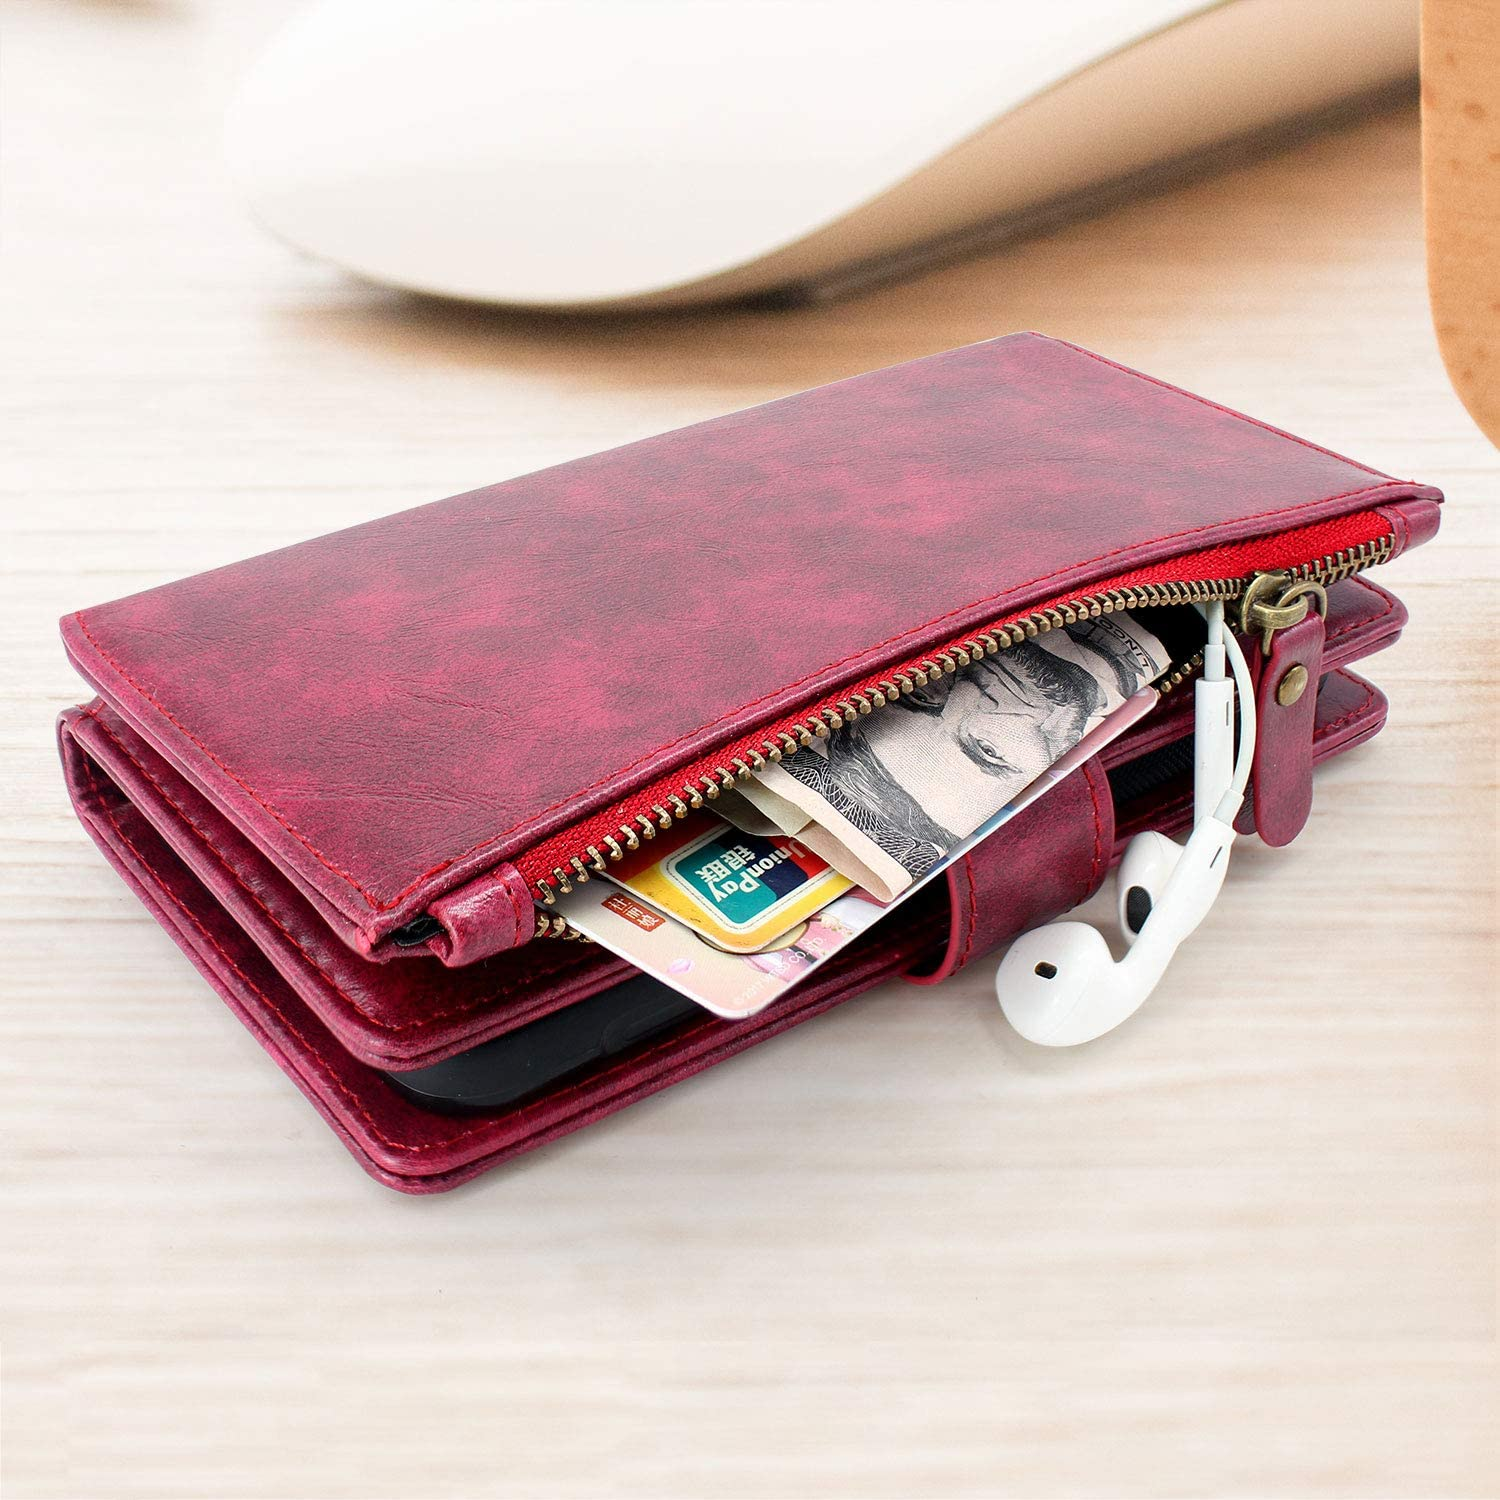 Harryshell Detachable Magnetic Zipper Wallet Leather Case Cash Pocket with 12 Card Slots Holder Wrist Strap Removable Cover for OnePlus Nord N10 5G 6.49